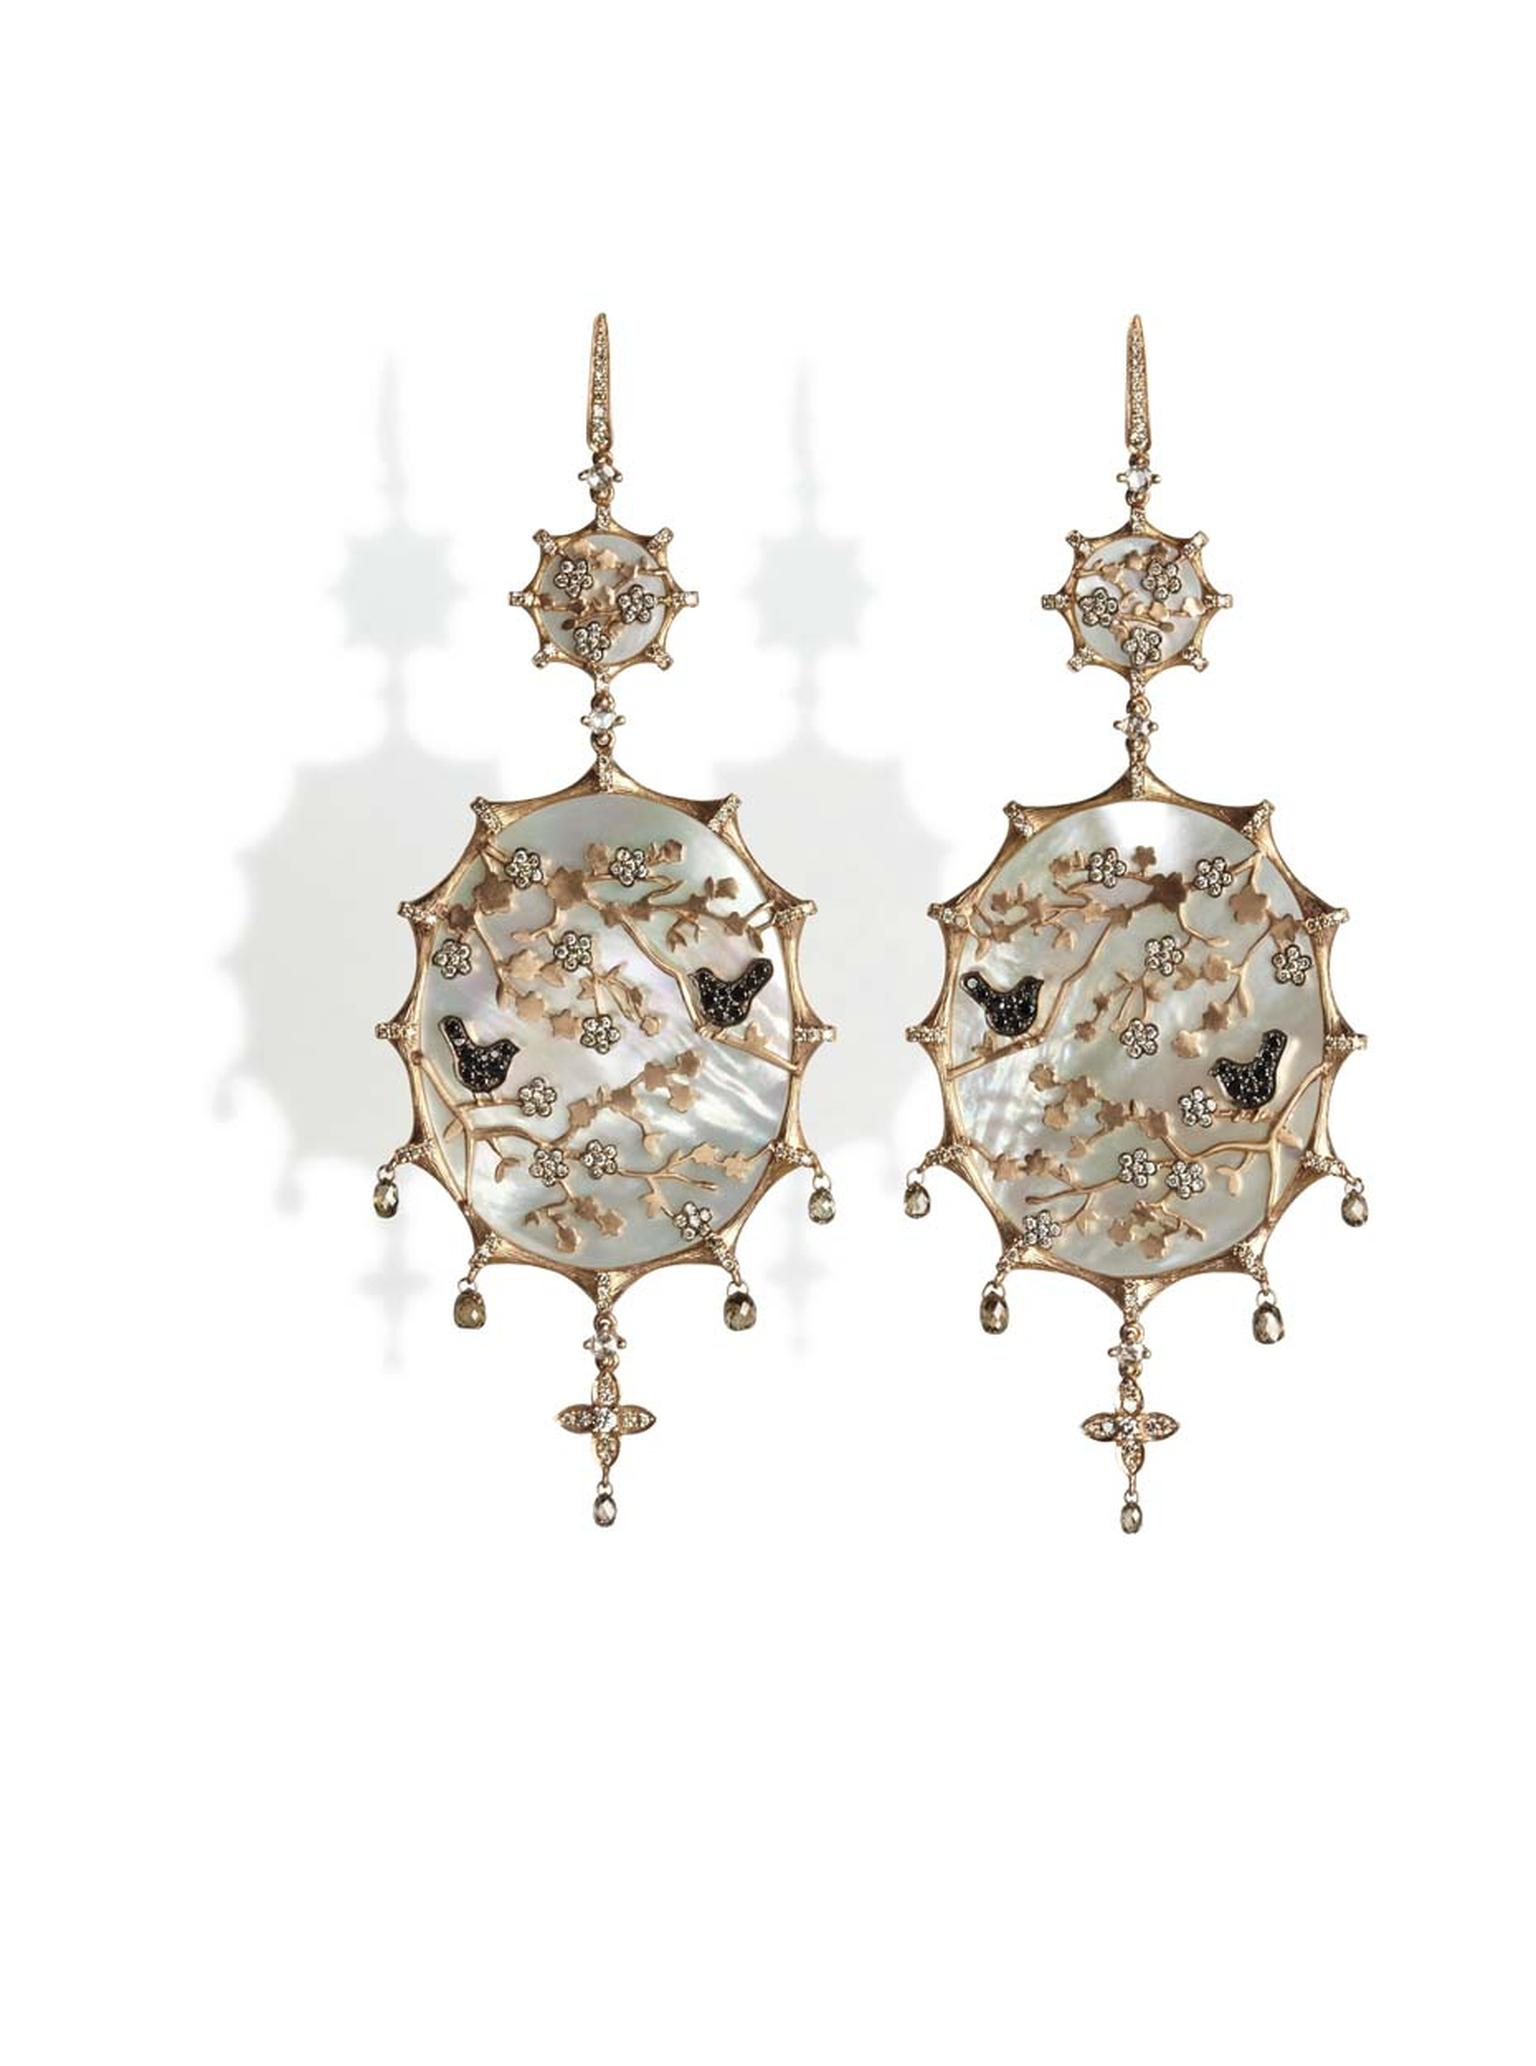 Annoushka Dream Catcher, diamond and mother-of-pearl earrings, as worn by Bafta award winner Patricia Arquette.